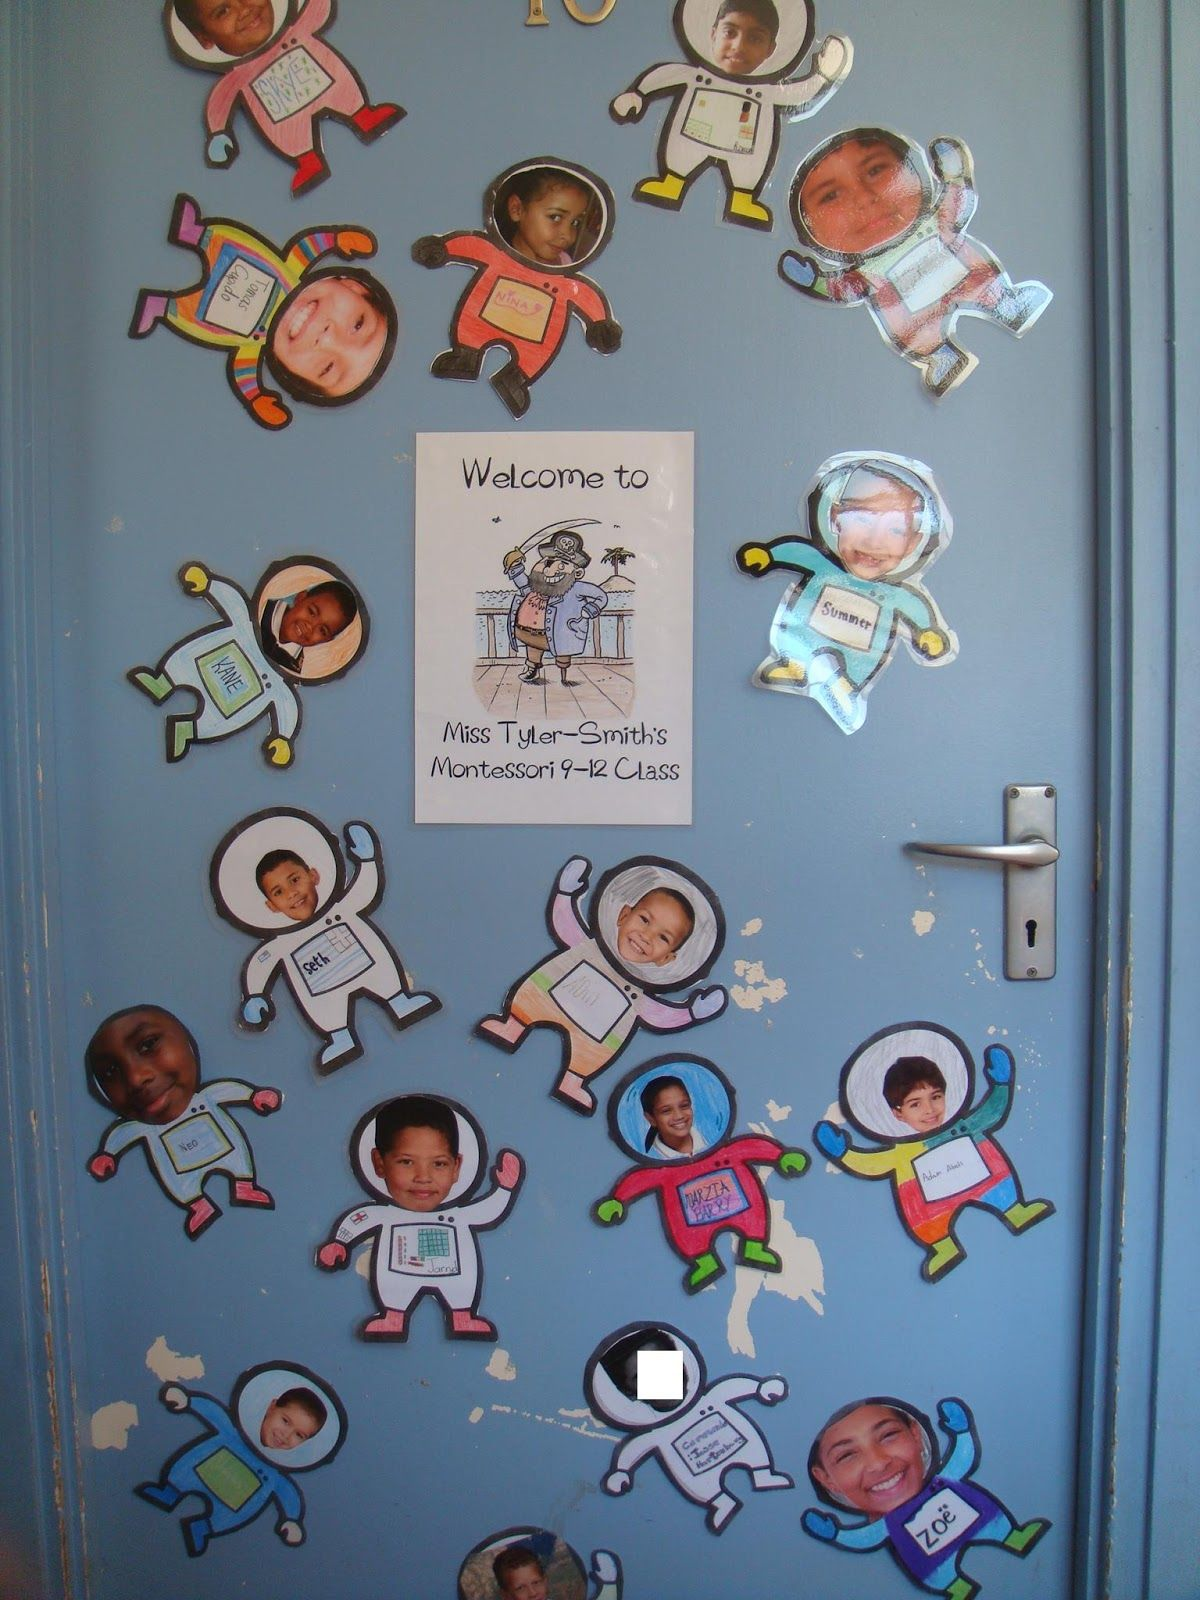 Space Classroom Decorations Since Our Theme This Term Is SPACE I - Astronaut decorations